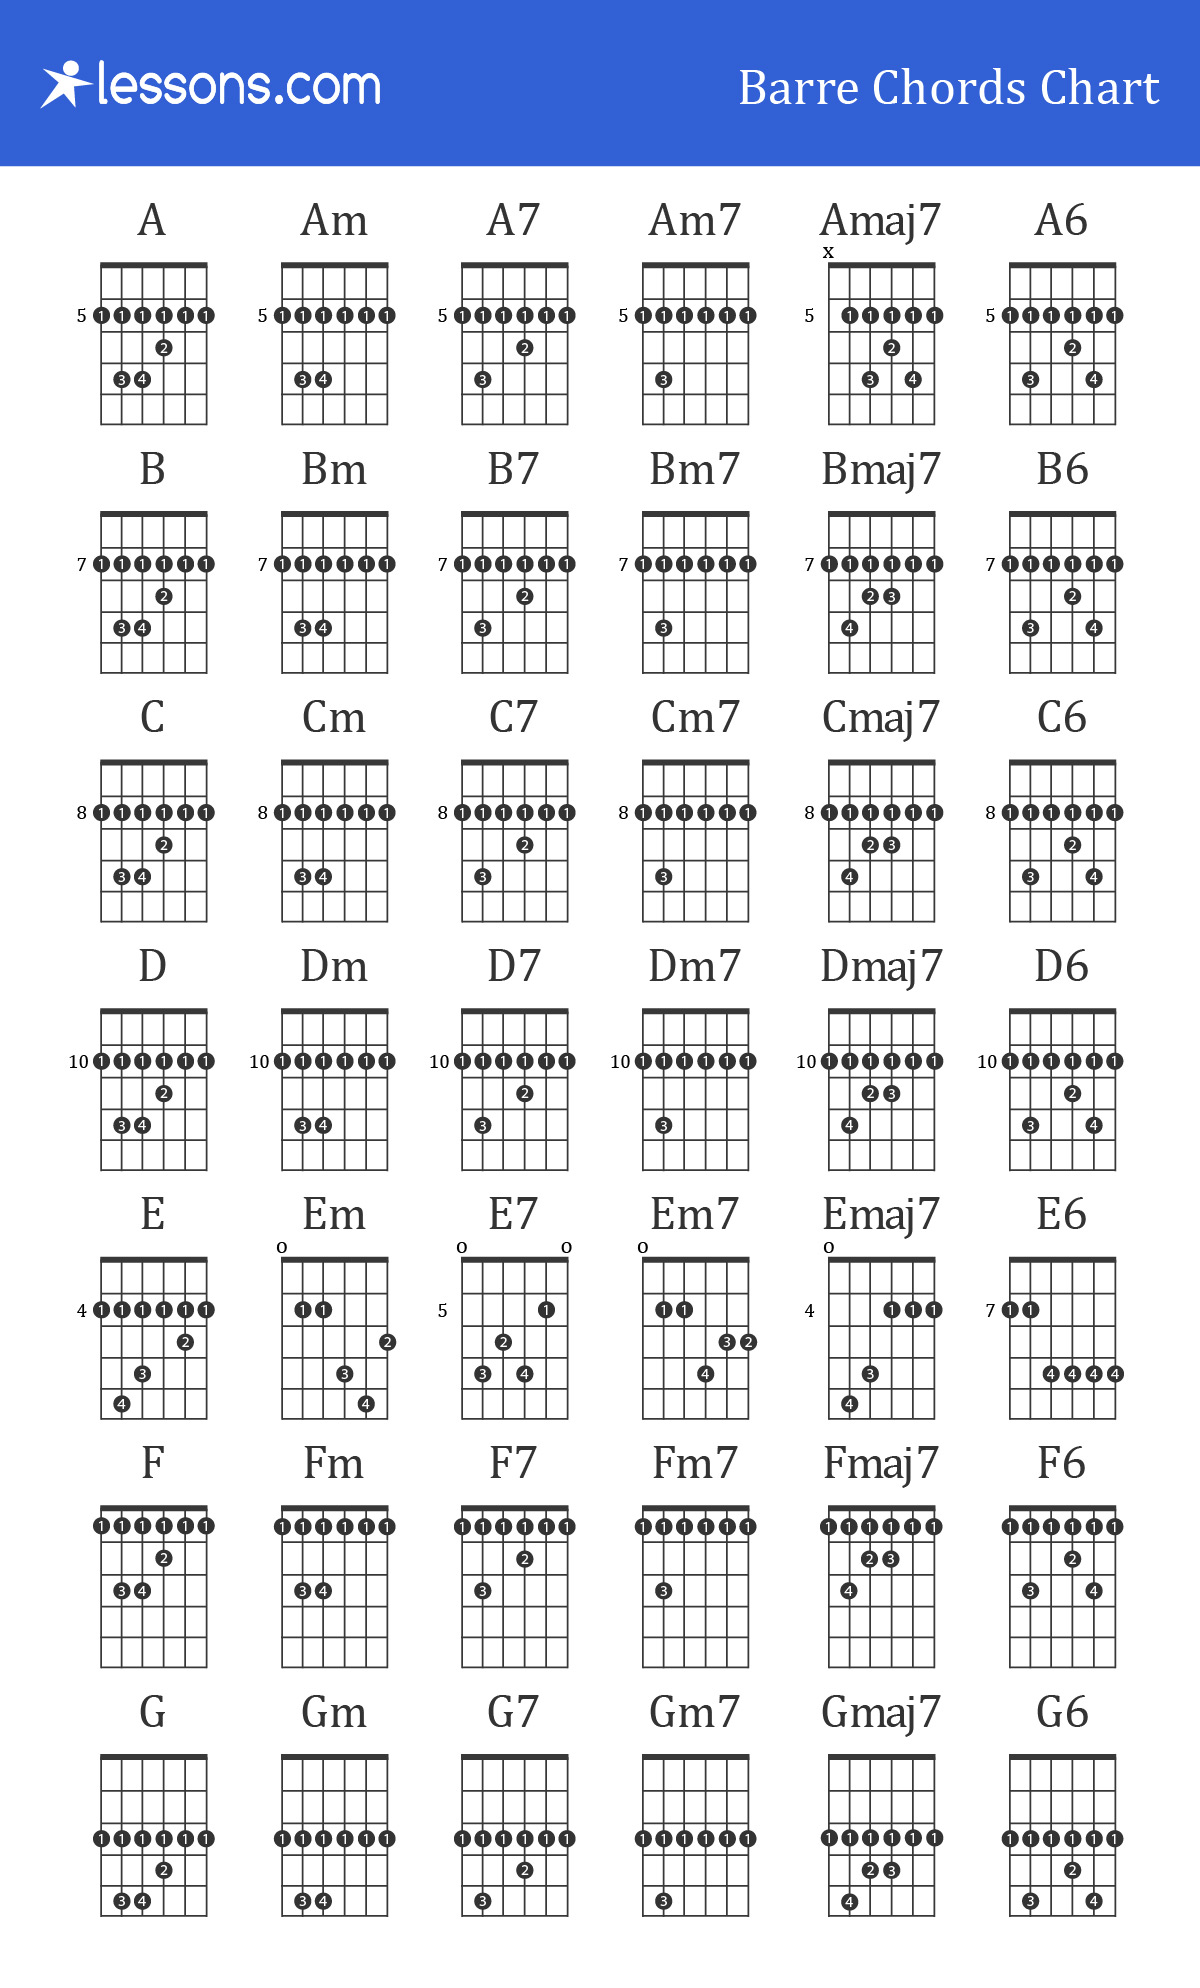 Play 12 Songs With 2 Chords - guitareo.com